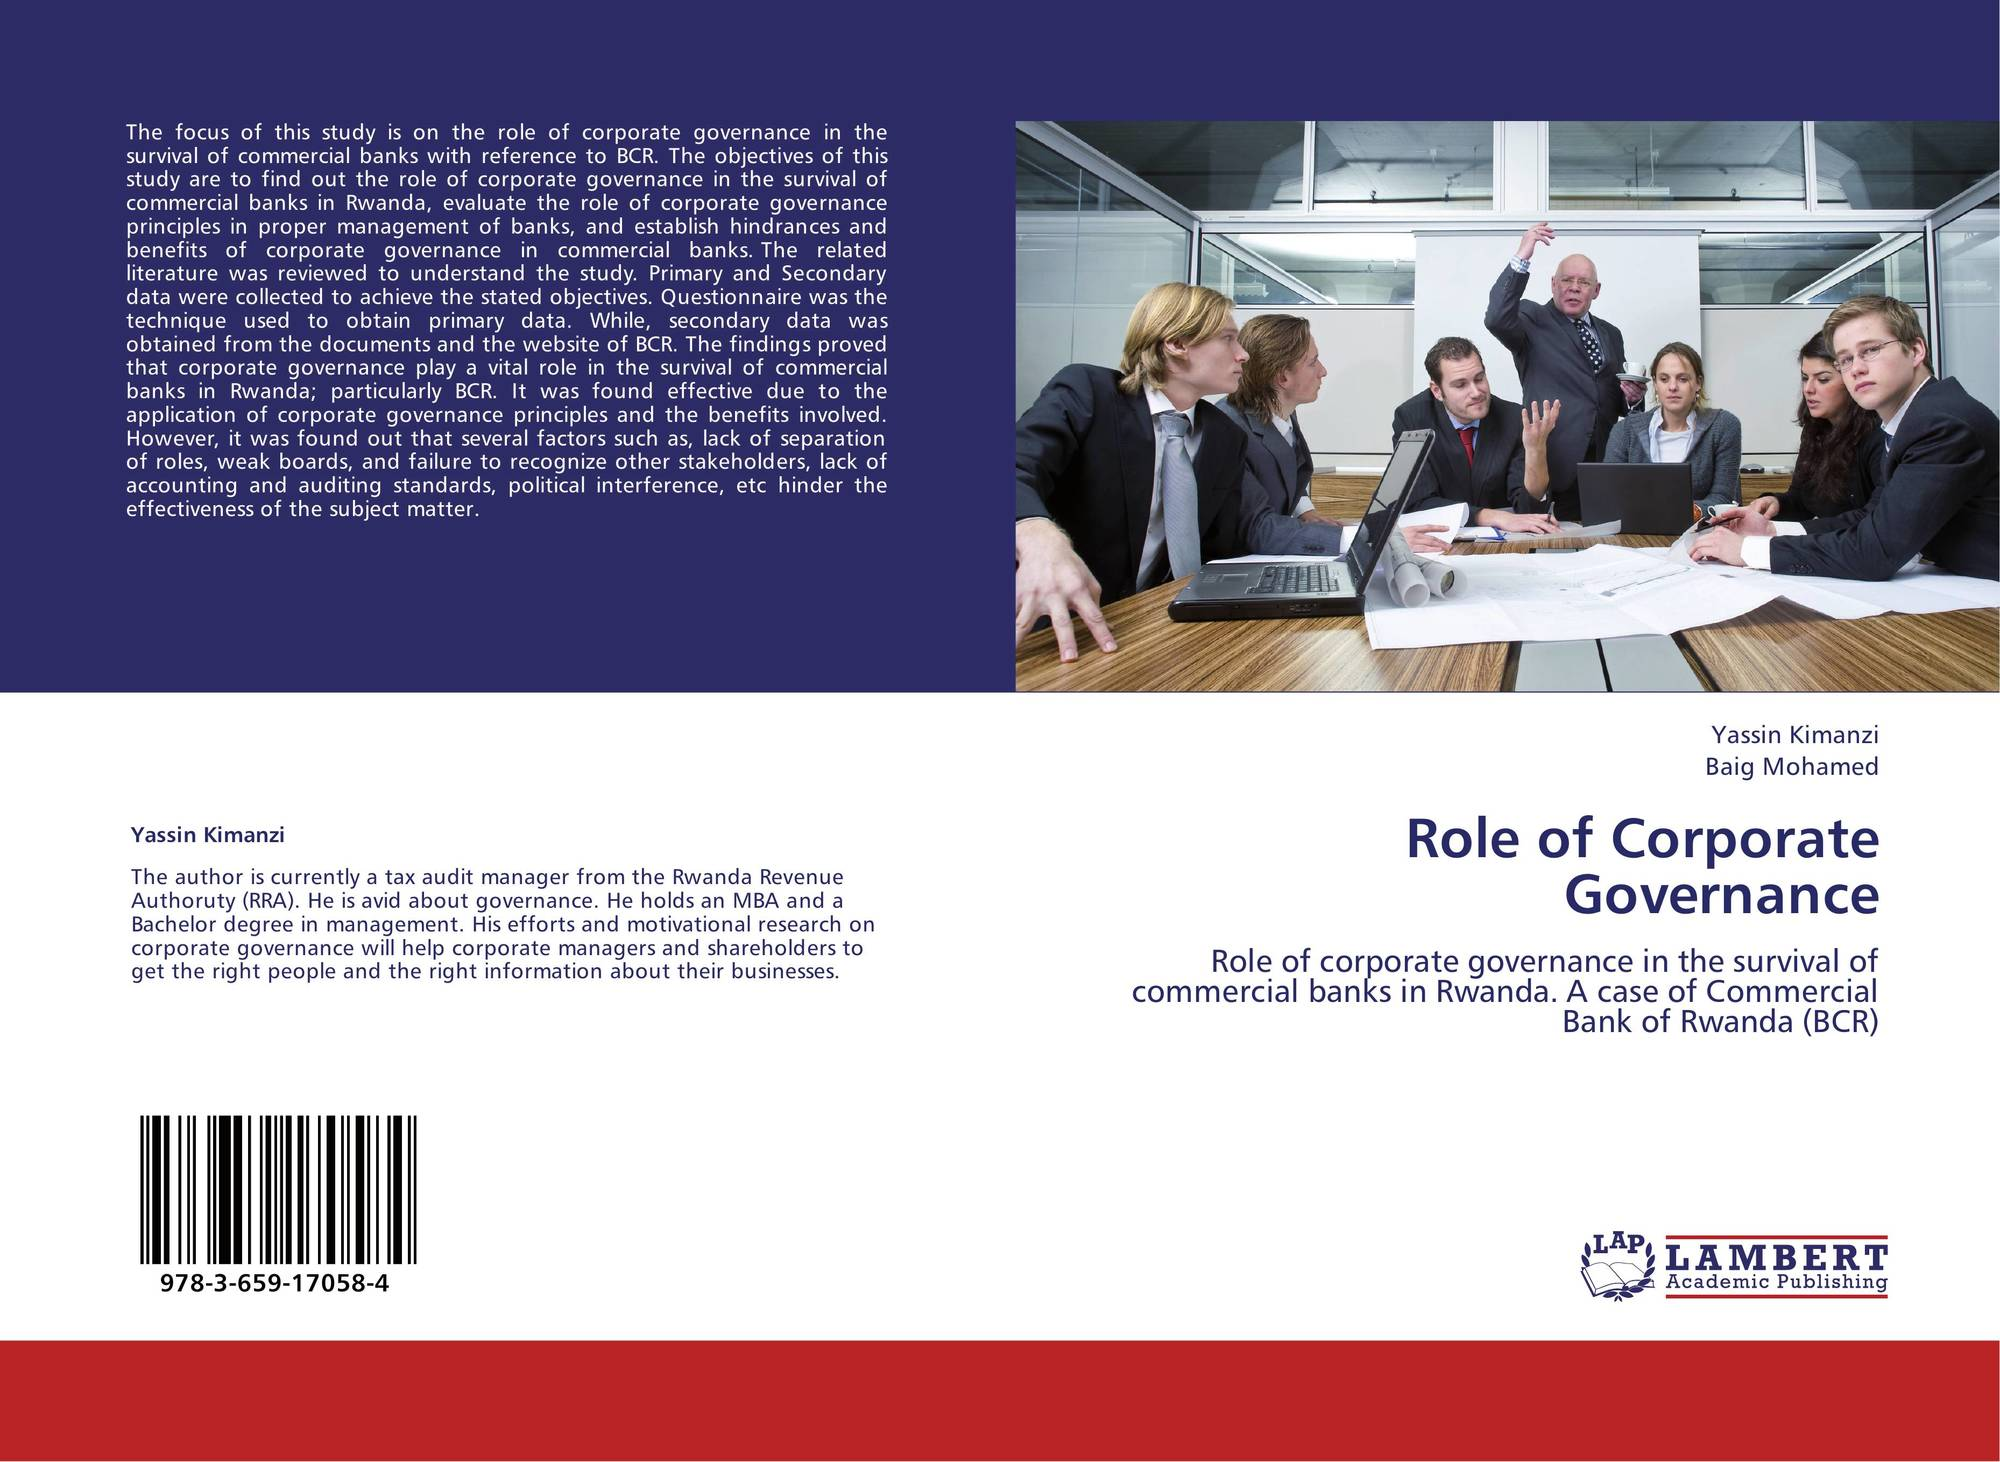 role of governance What does governance really mean when people talk about company governance they're usually talking about the role of the board of directors boards exist to ensure a company is well run, and well governed so that shareholder value can be maximised and no 'funny business' goes on.